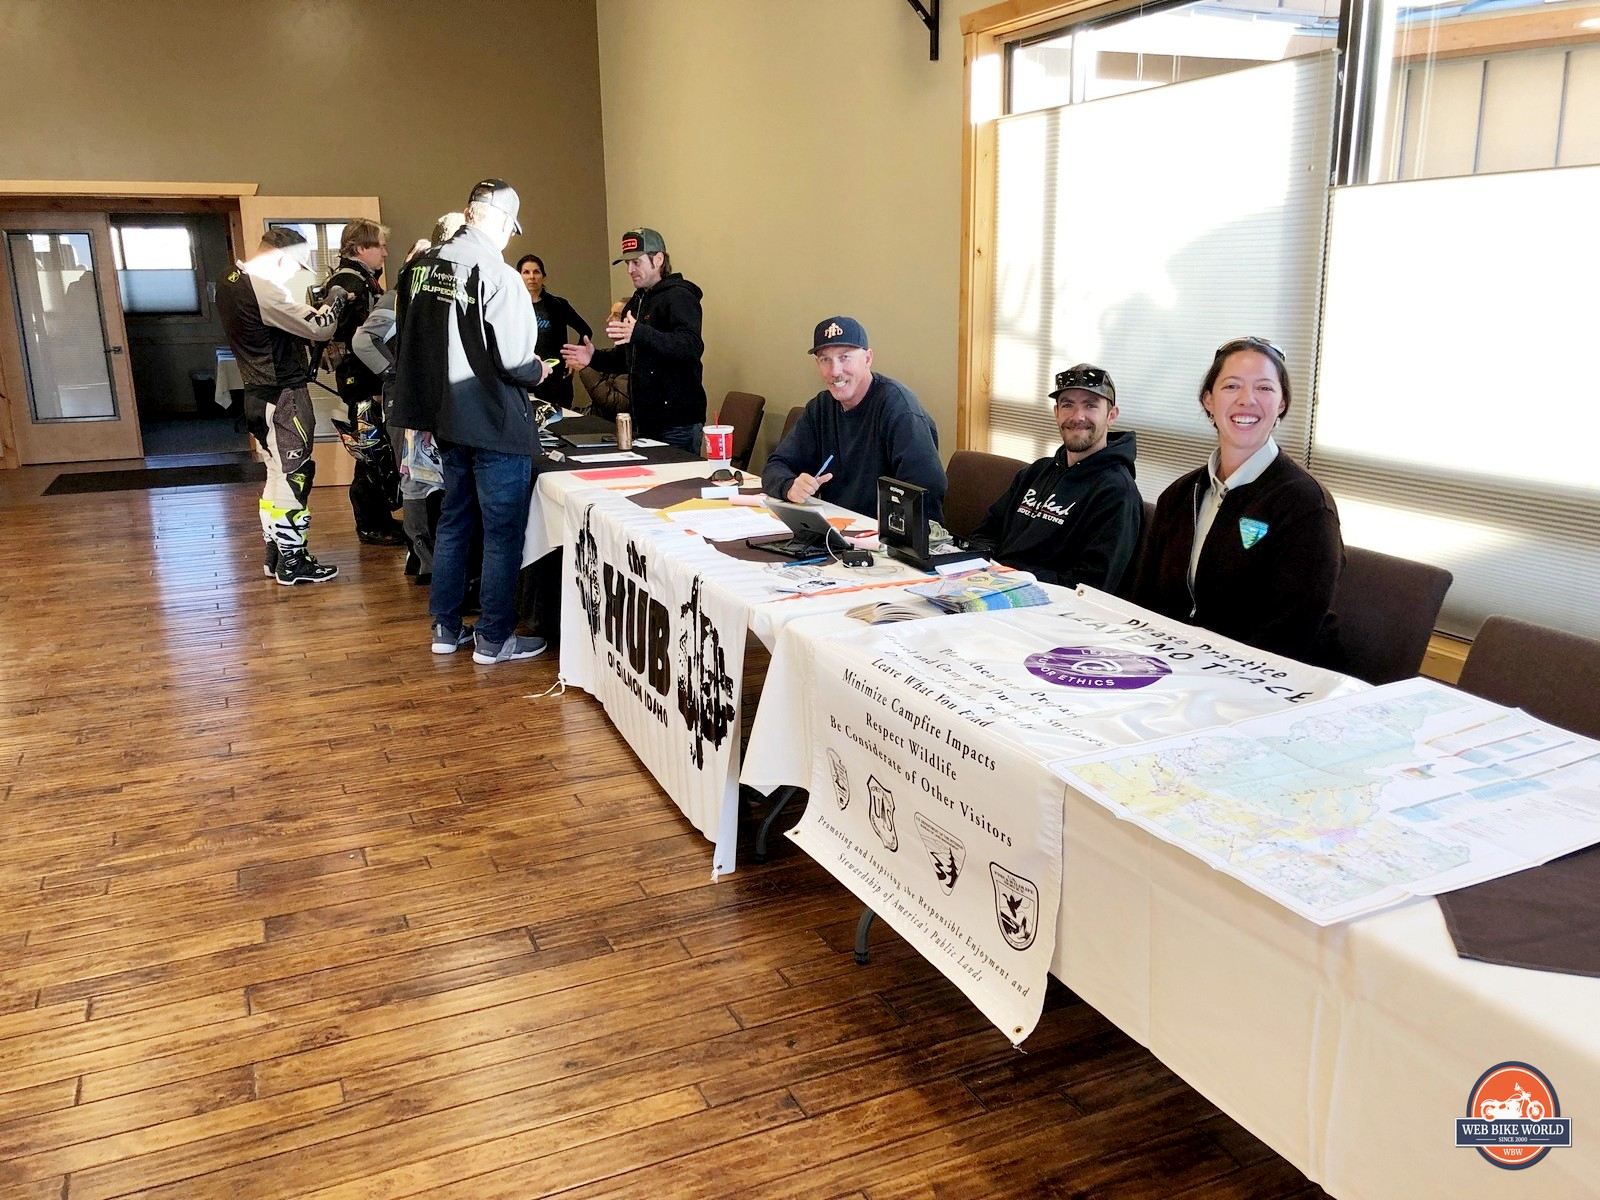 Rally volunteers at the Klim Cow Tagz XL Rally 2019.